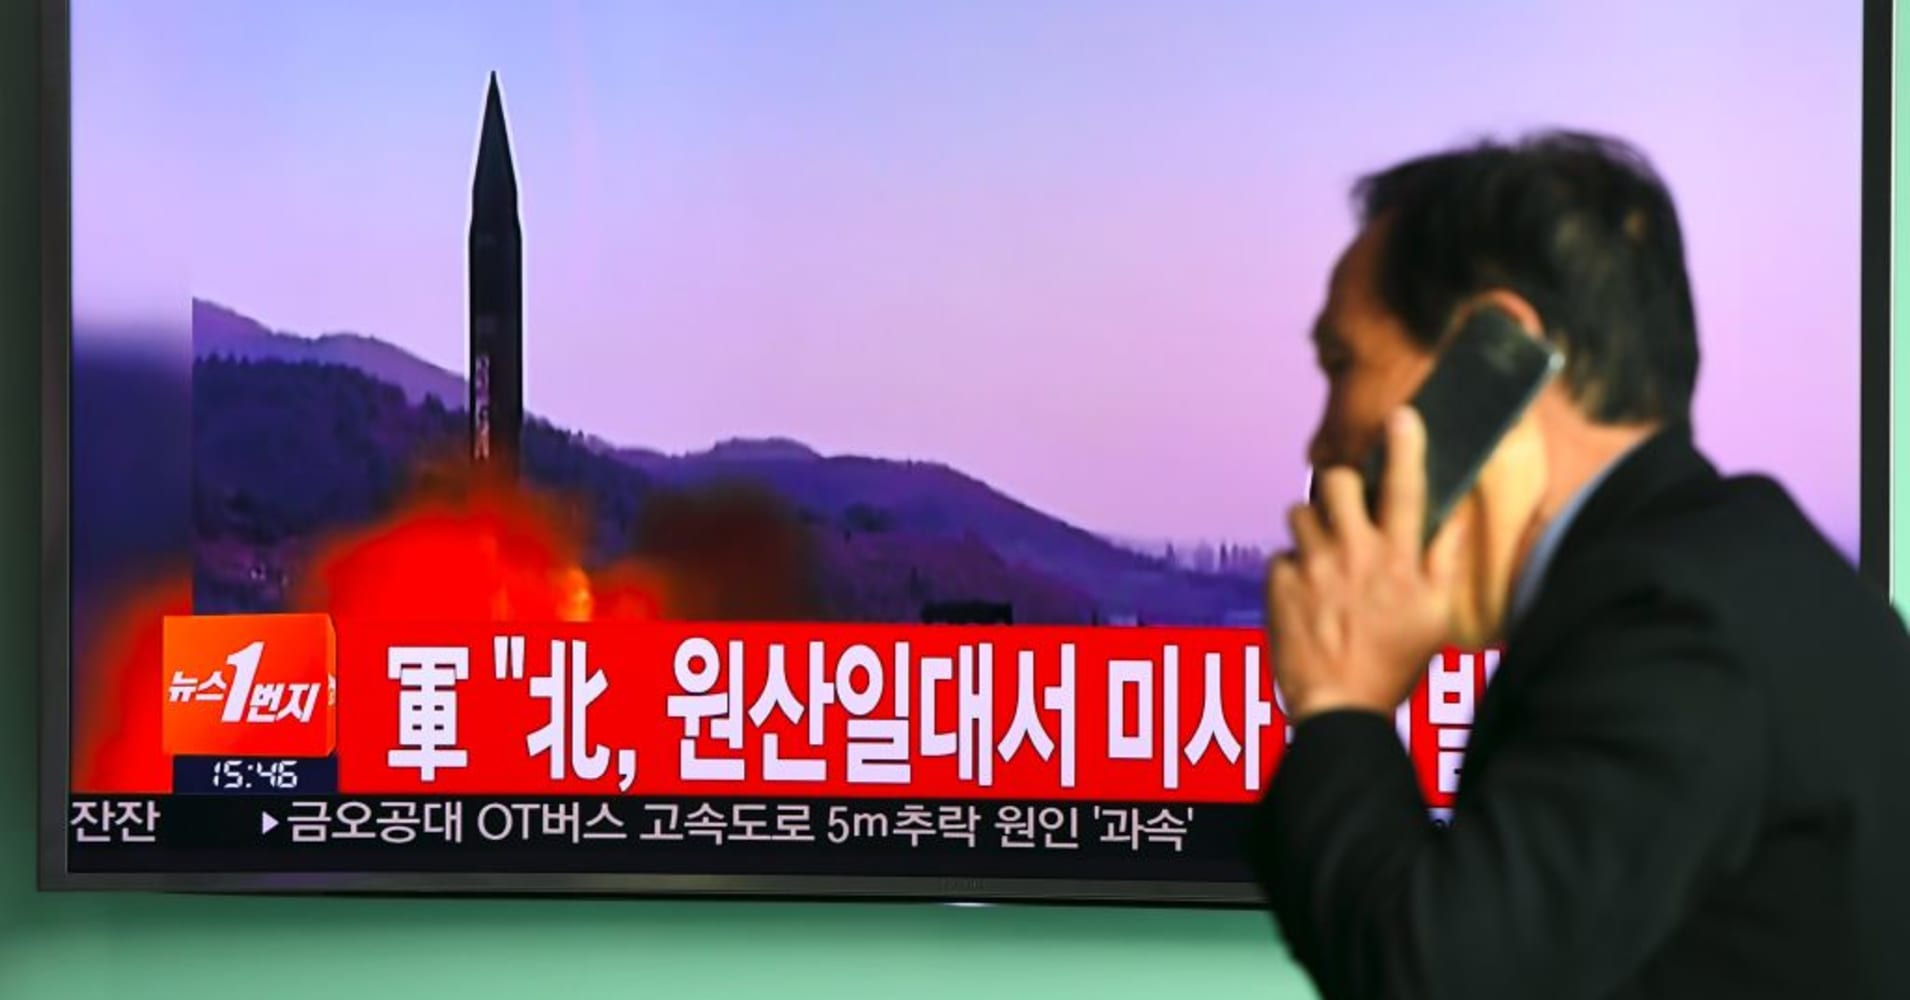 North Korea tests rocket engine: US officials